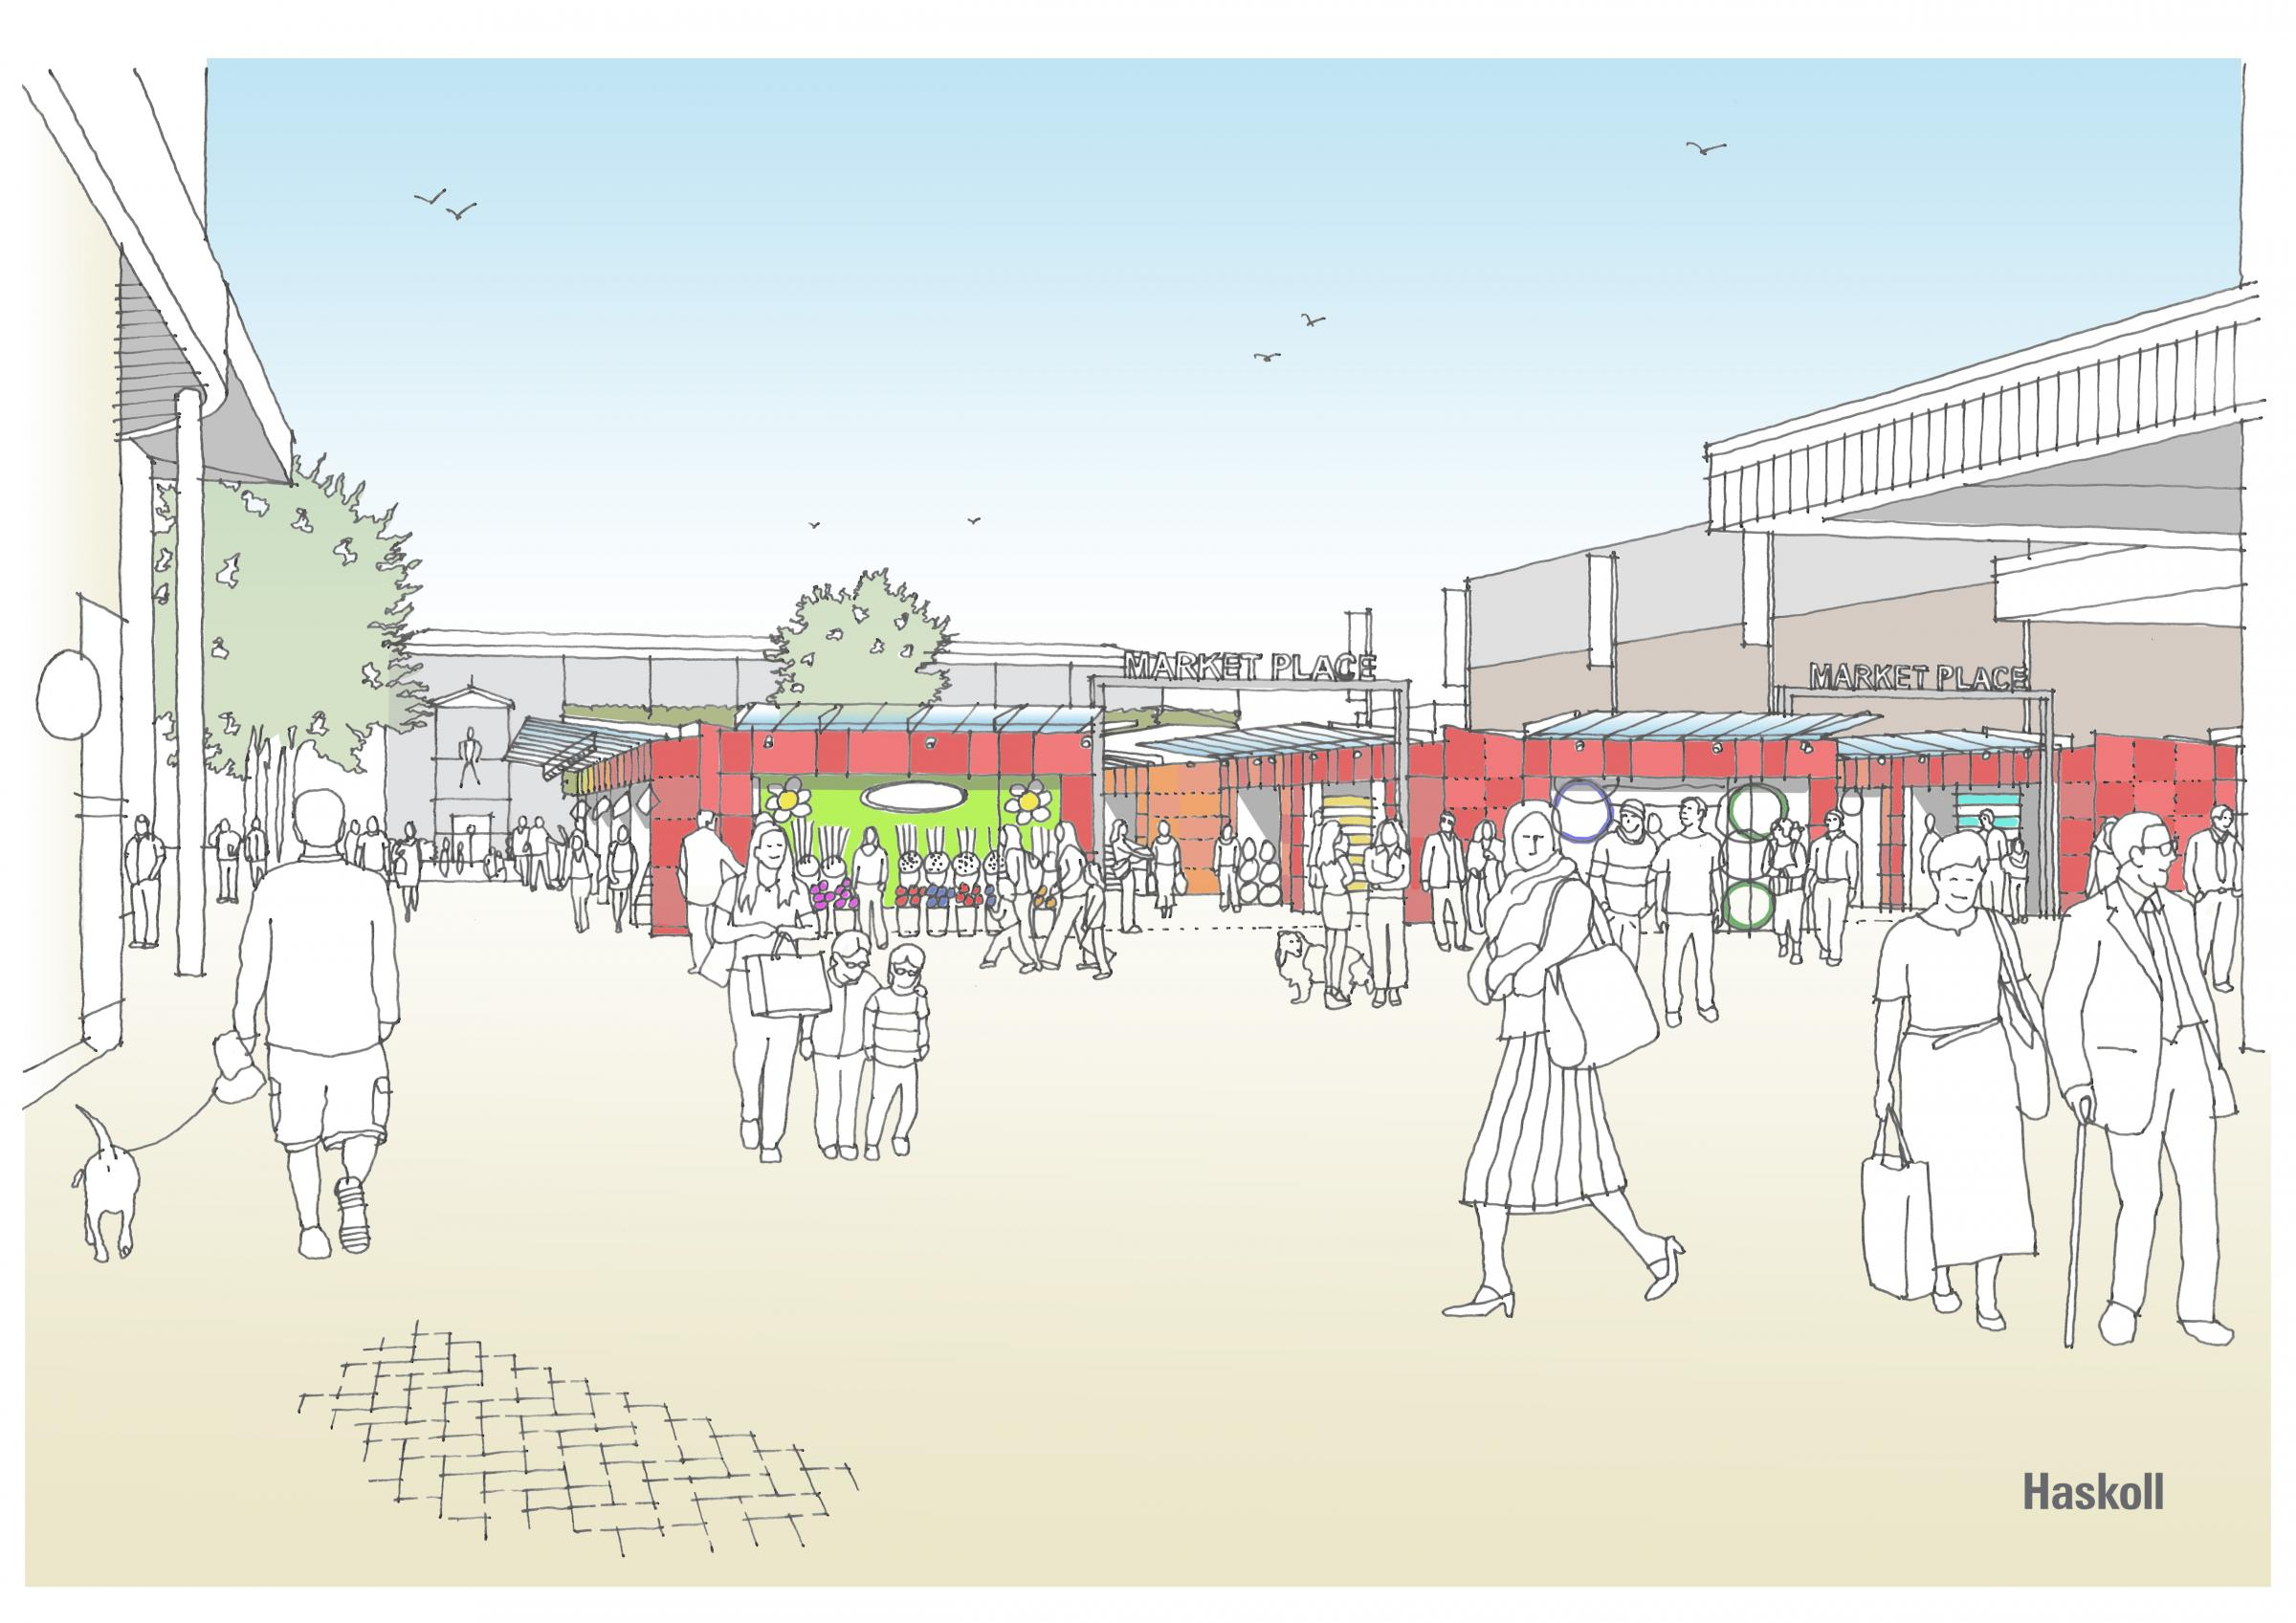 New college delayed by Basildon market decision